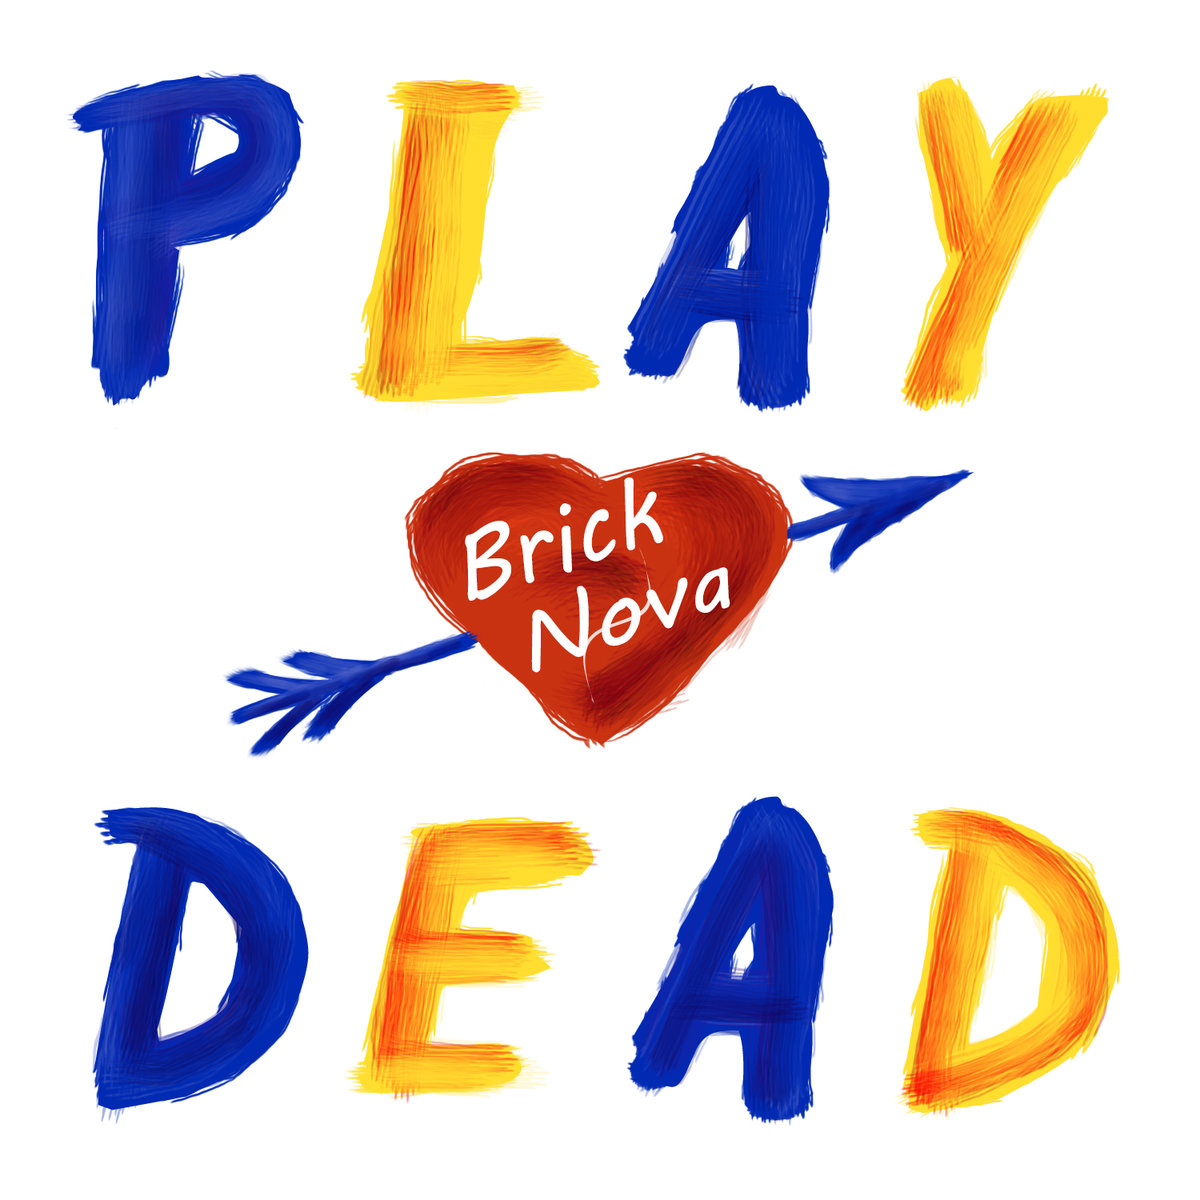 Play Dead album cover.jpg